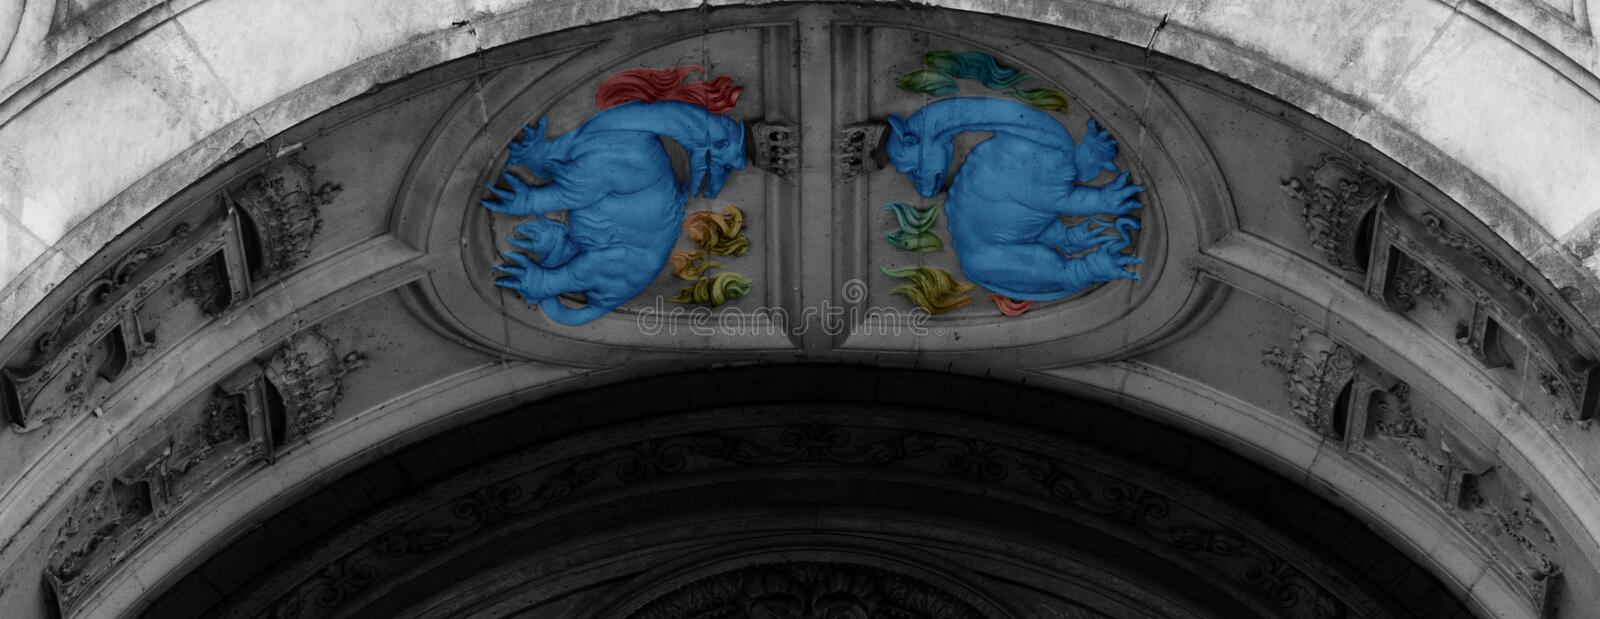 Twin blue dragons inside the arch. Shot in black and white  and painted in colors detail on the facade of this historic building representing some character stock image